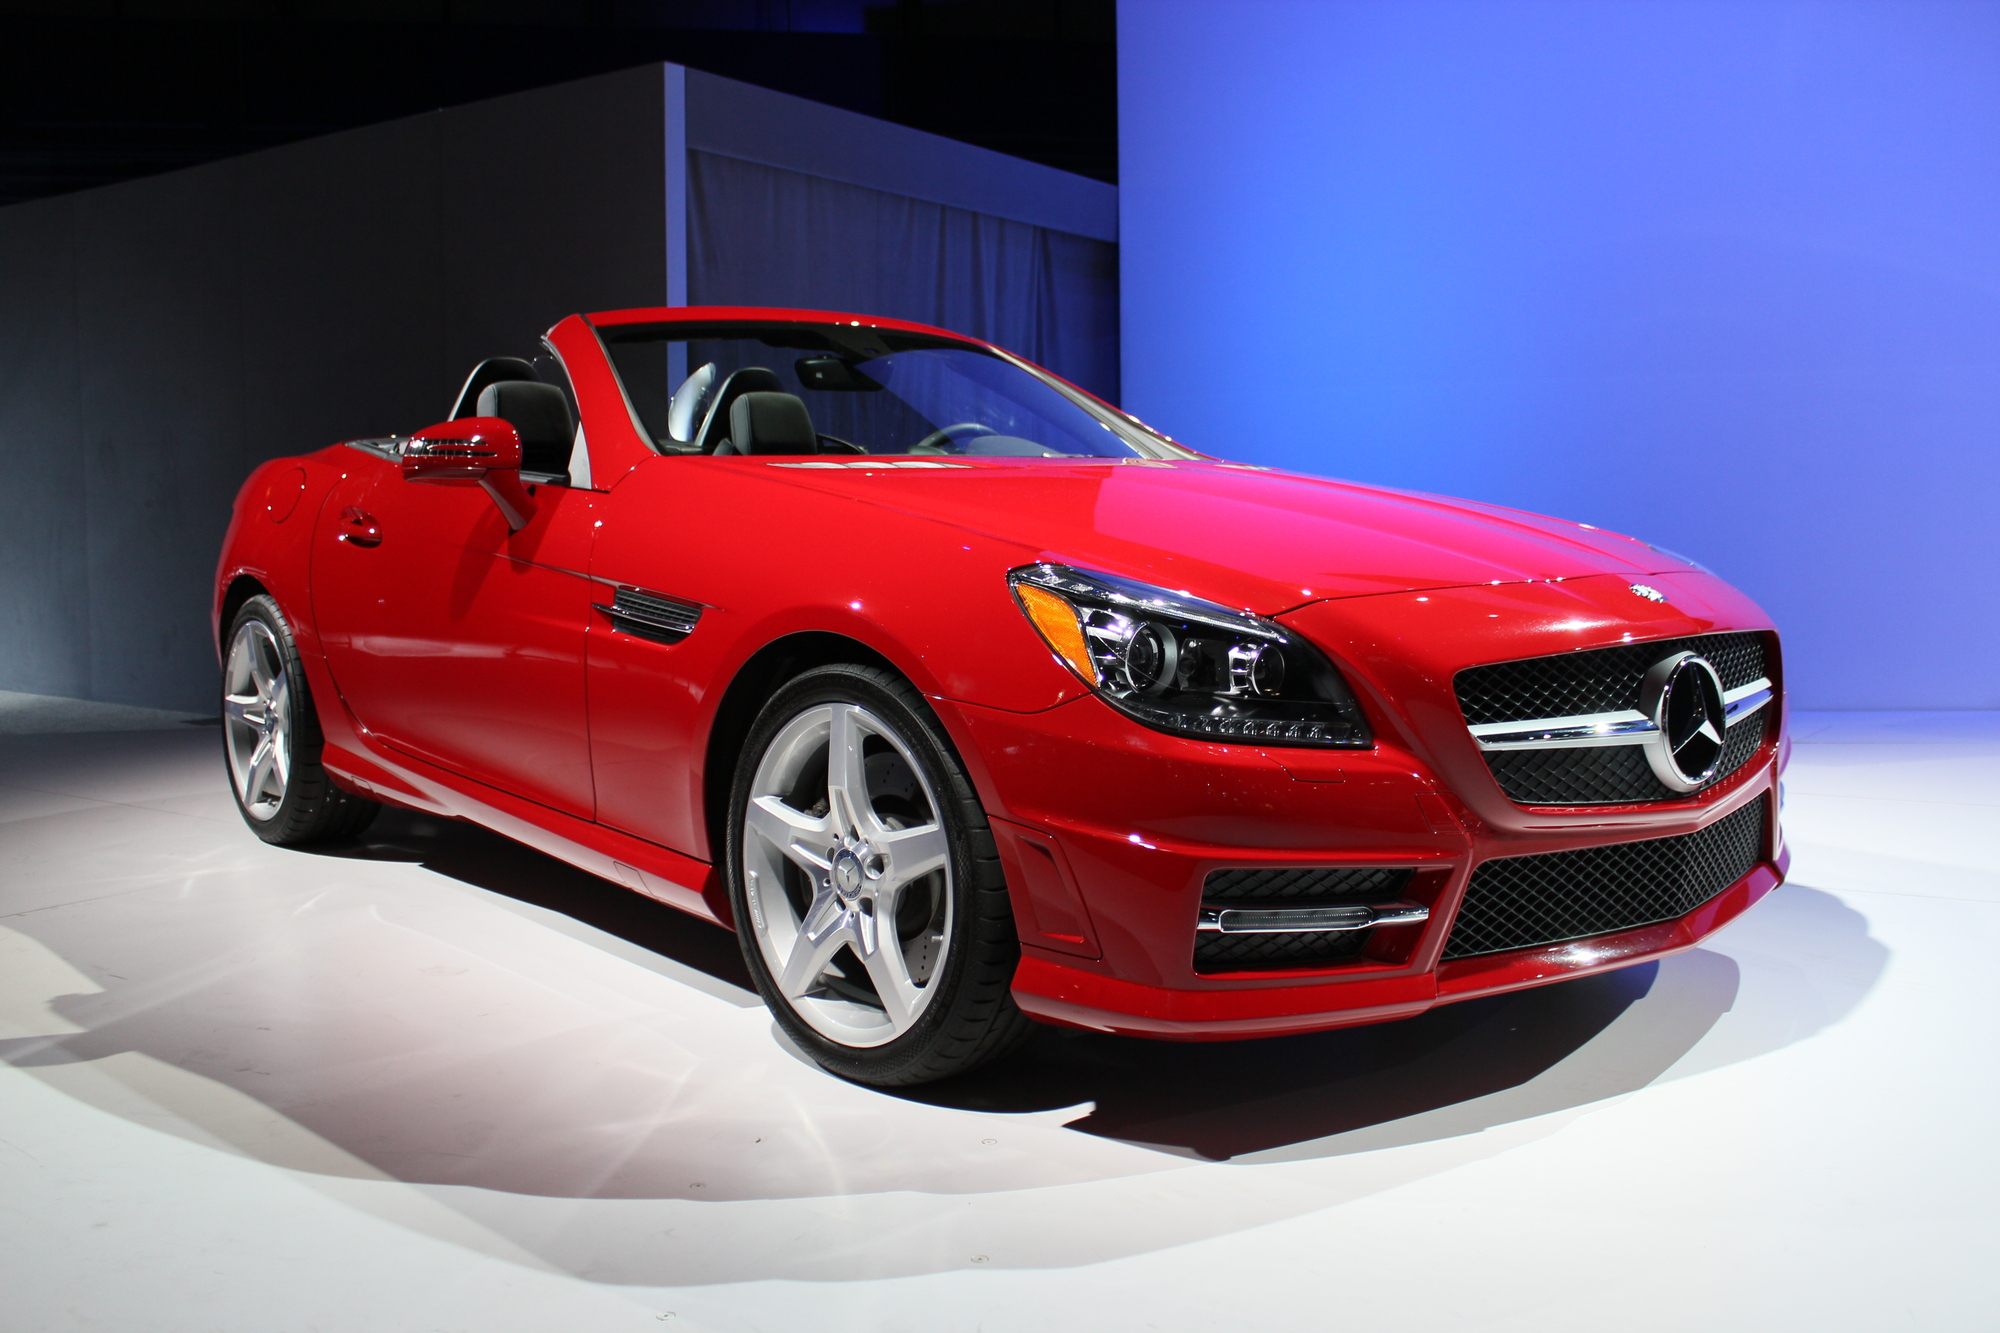 2012 mercedes benz slk350 priced from 55 675 2012 cls from 72 175. Black Bedroom Furniture Sets. Home Design Ideas